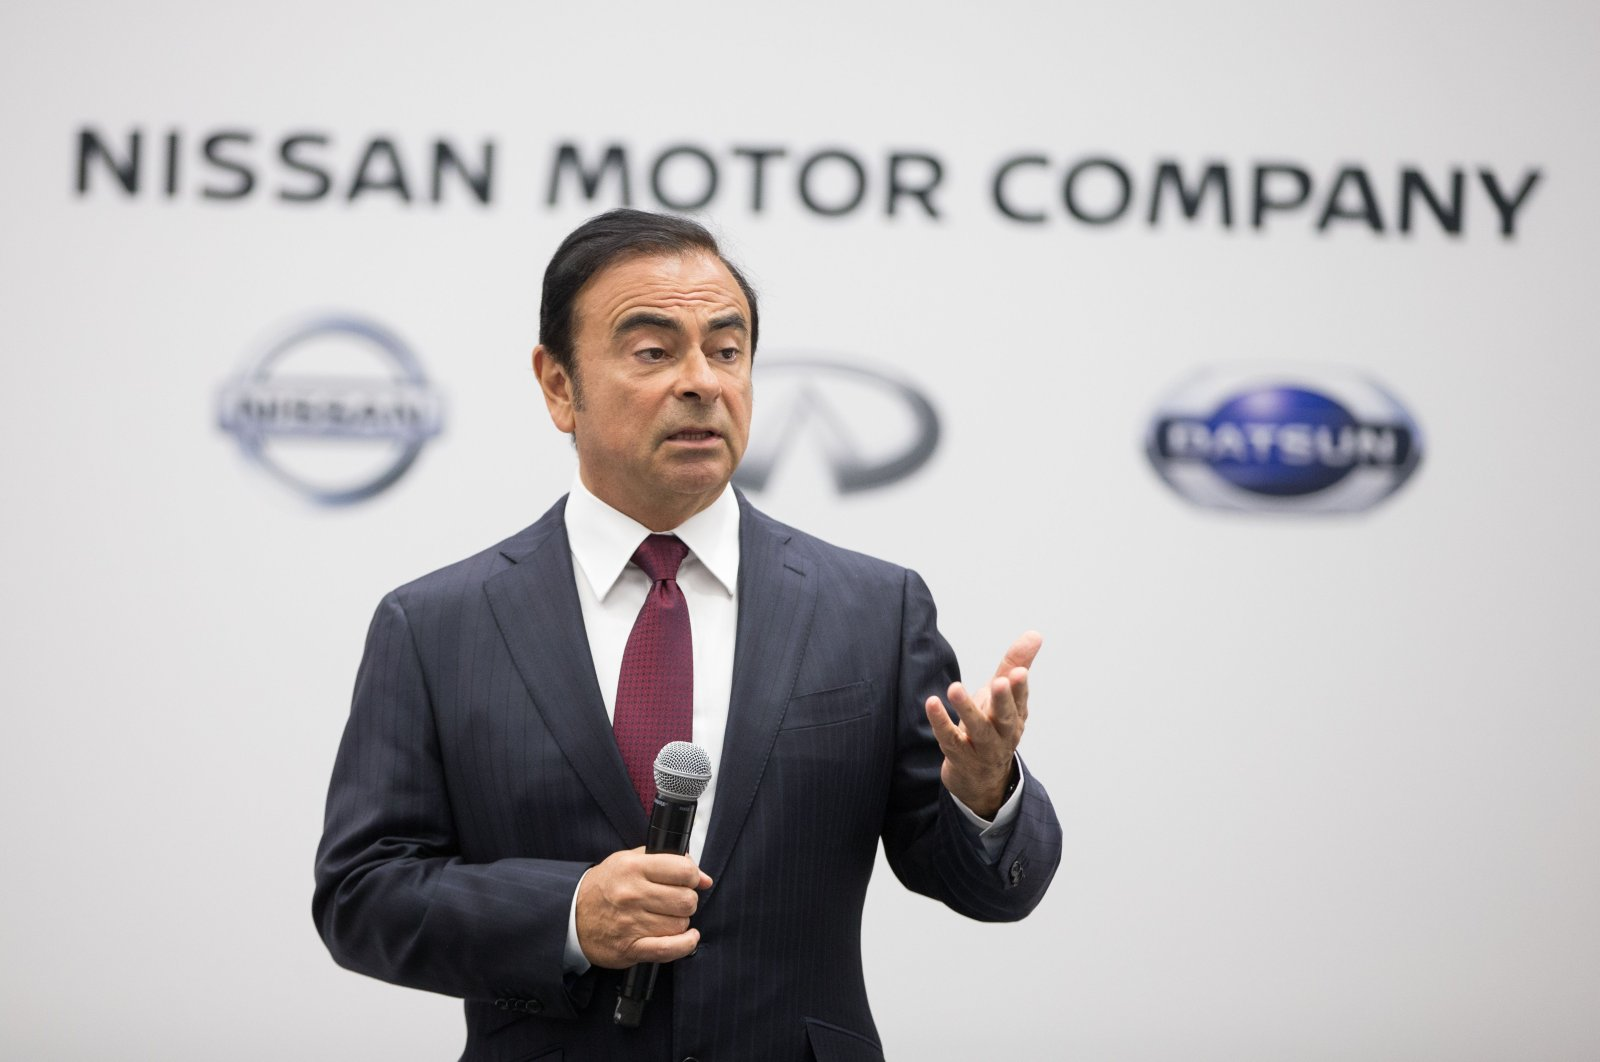 Carlos Ghosn, former chairman, president and chief executive officer of Nissan Motor Company, speaks to reporters during a press conference at the 2016 North American International Auto Show in Detroit, Michigan, Jan. 11, 2016. (AFP Photo)